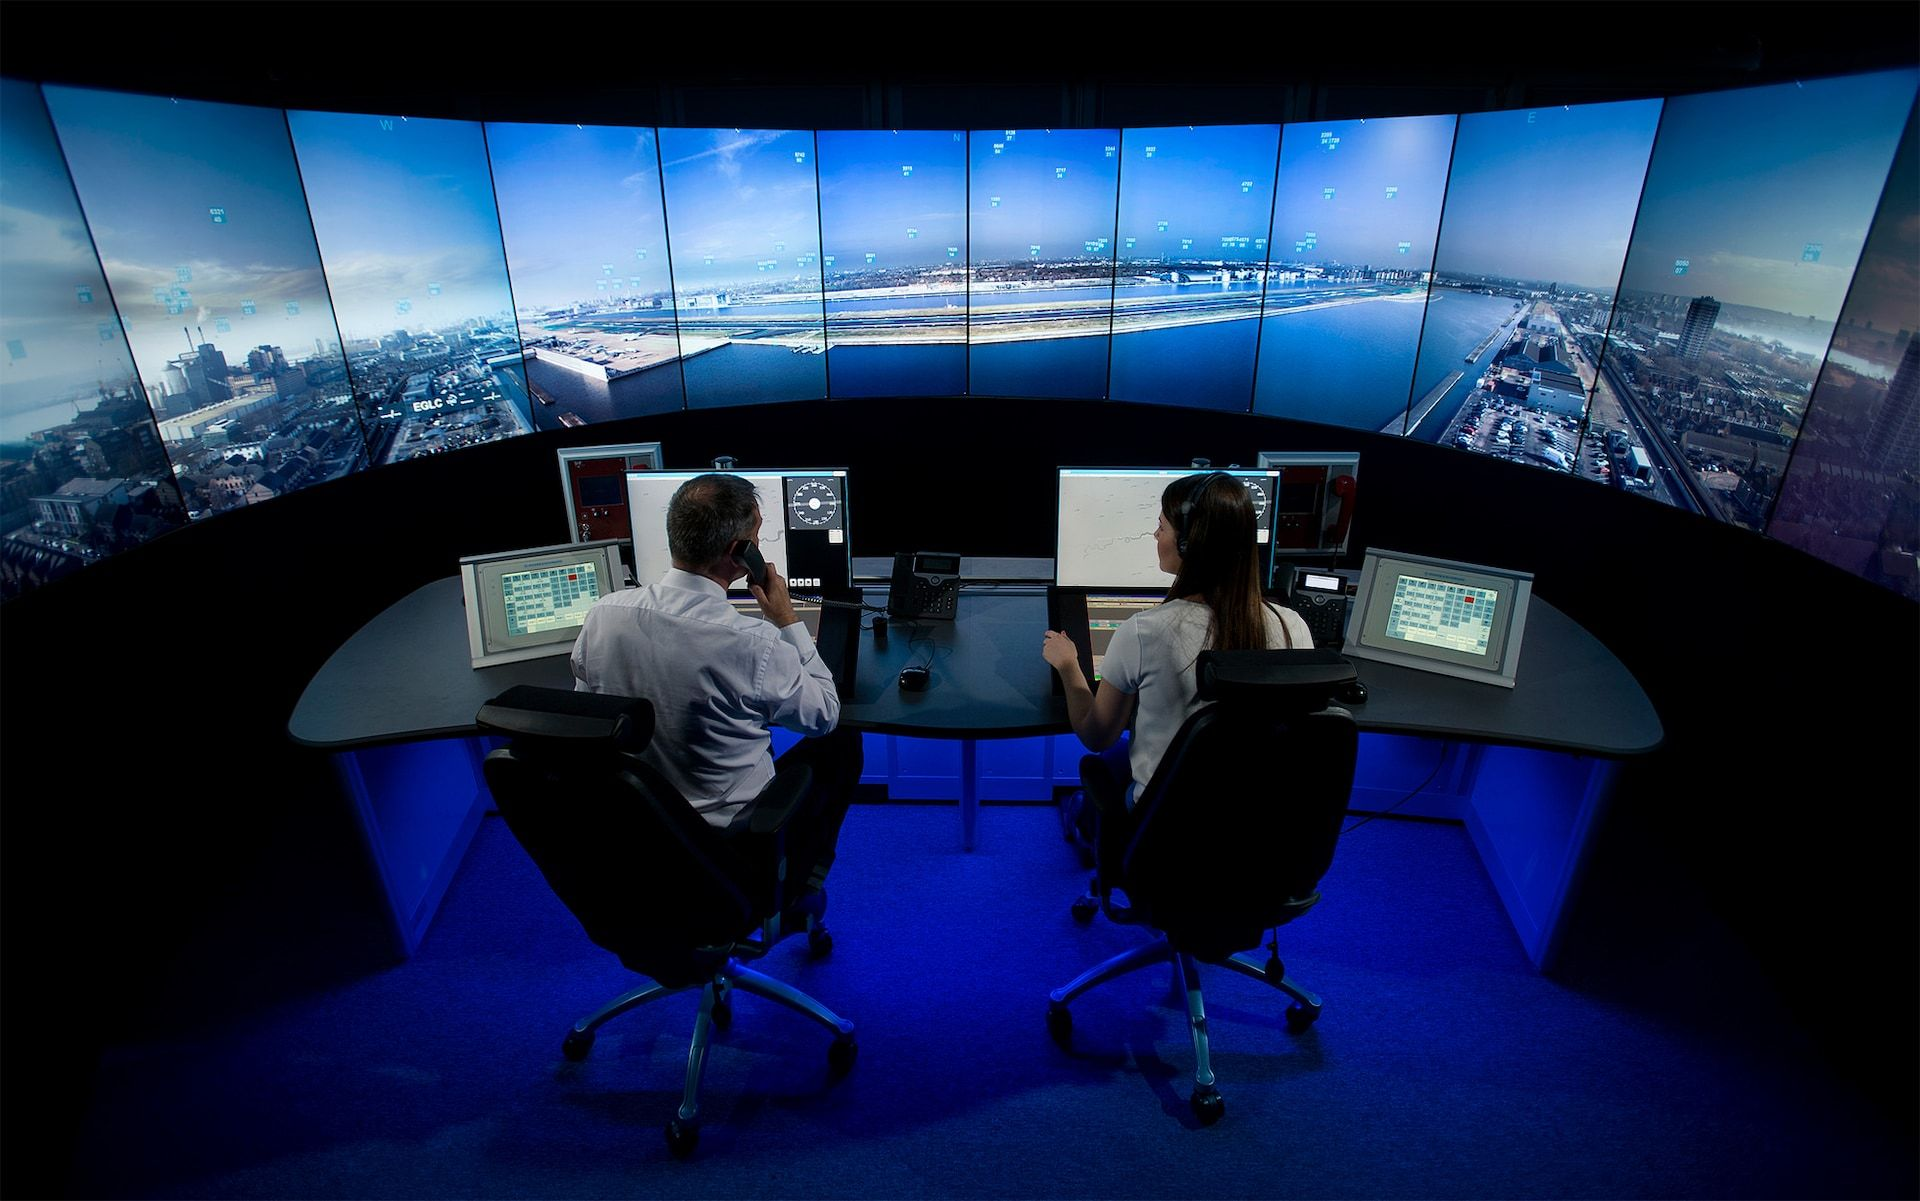 Inside the air traffic control tower of the future 80